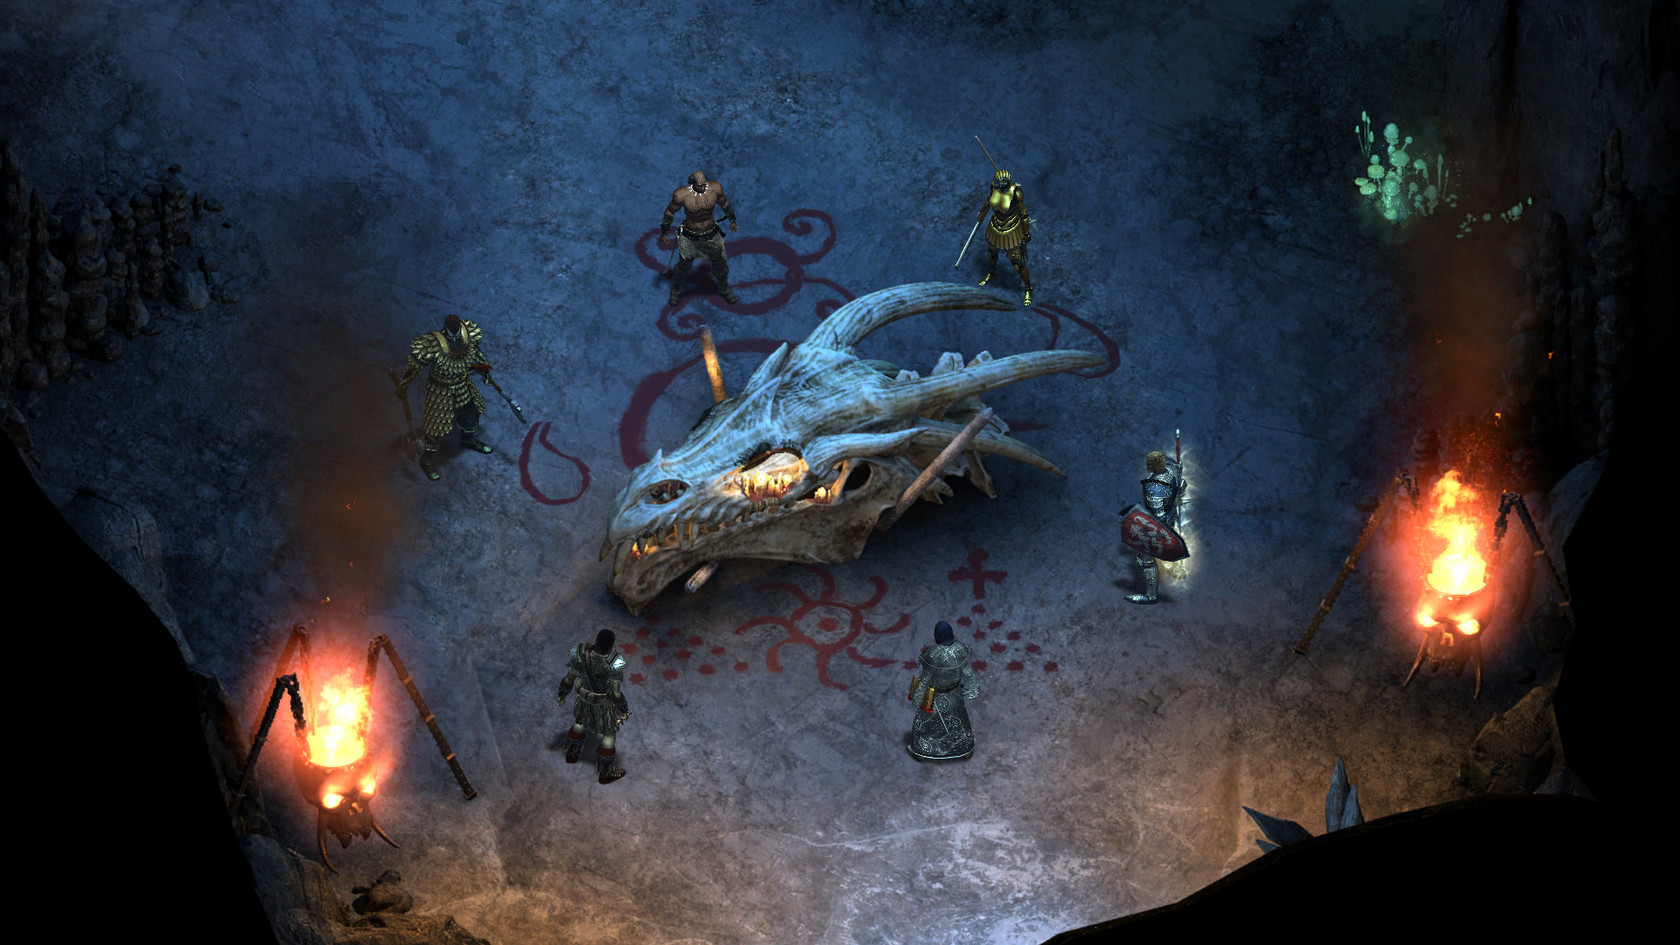 Pillars Of Eternity Wallpaper: Pillars Of Eternity: The White March